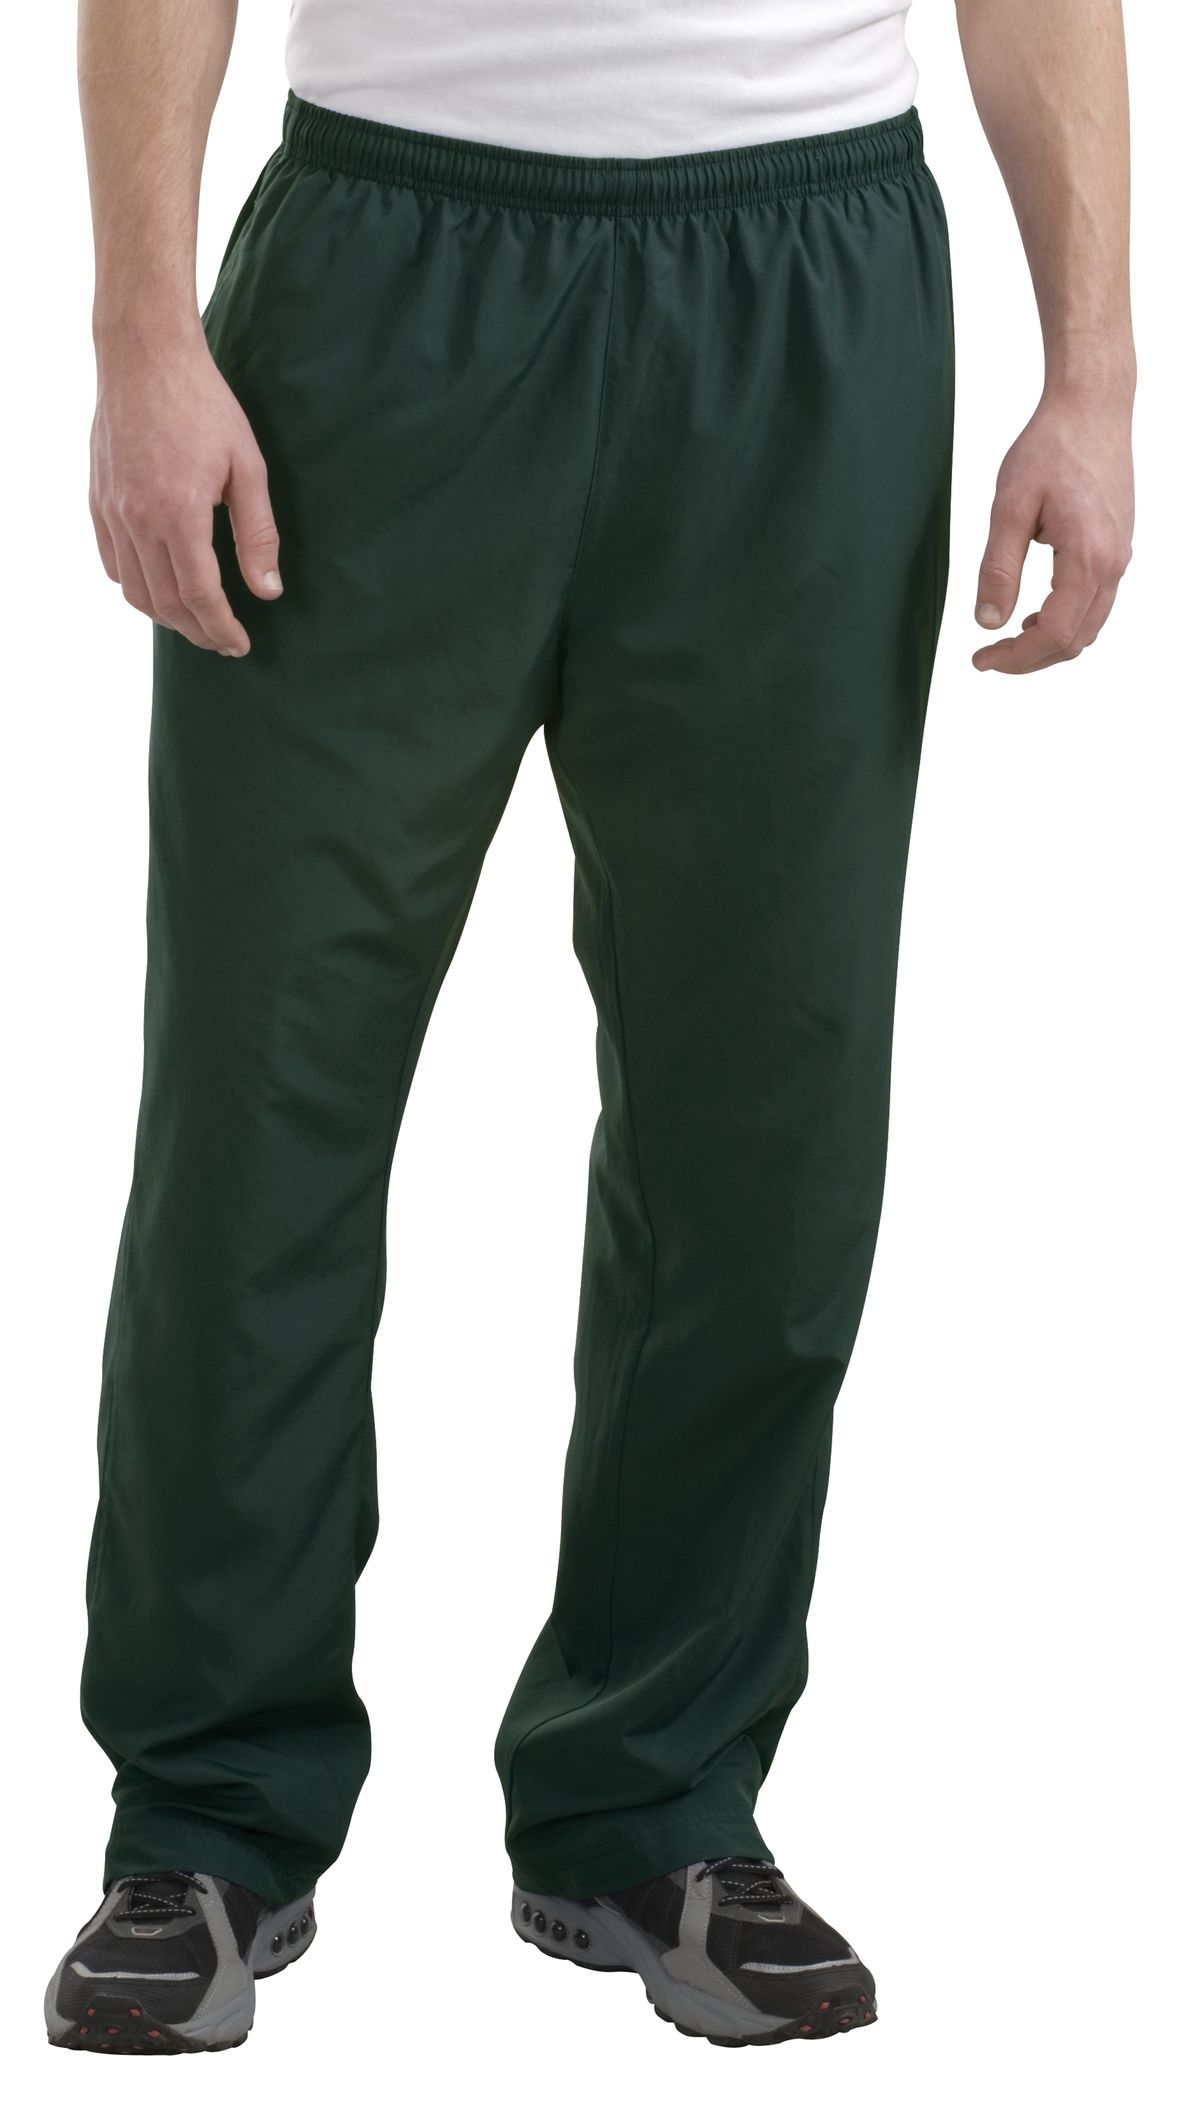 DISCONTINUED Sport-Tek 5-in-1 Performance Straight Leg Warm-Up Pant.  P712